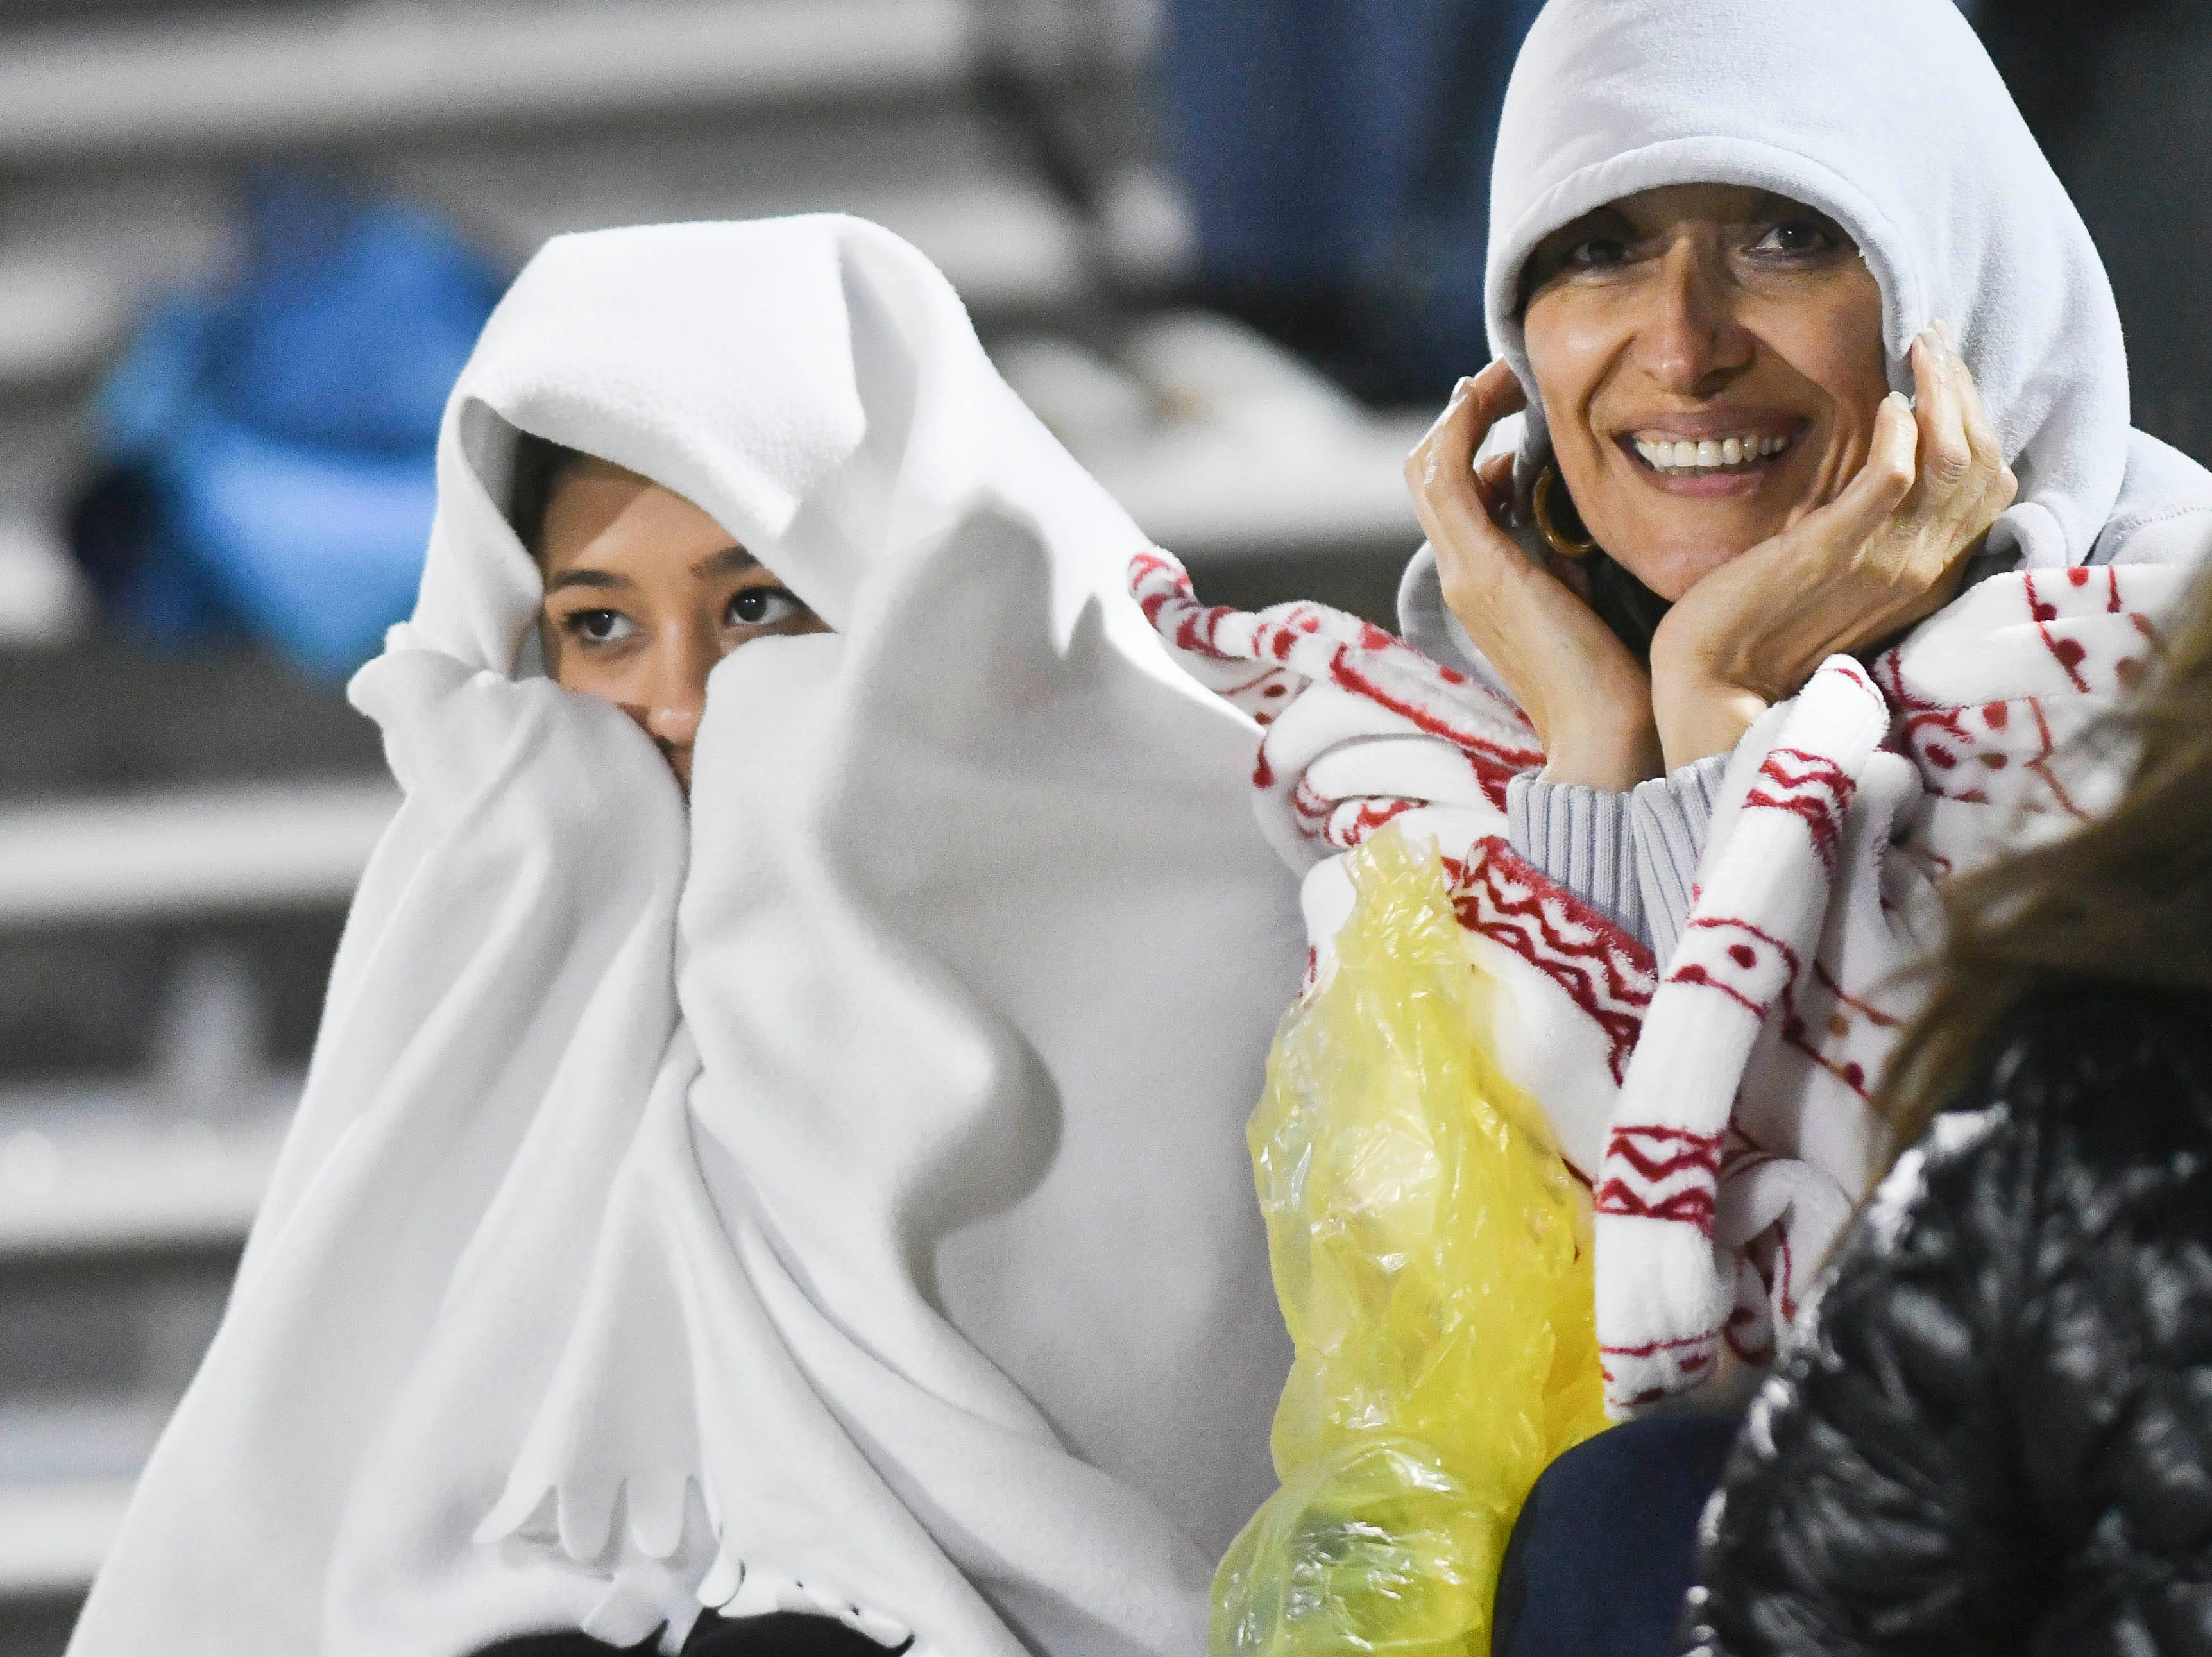 Soccer fans bundle up against the cold and wet weather during Saturday's Class 4A boys soccer regional semifinal between Melbourne and Windermere.